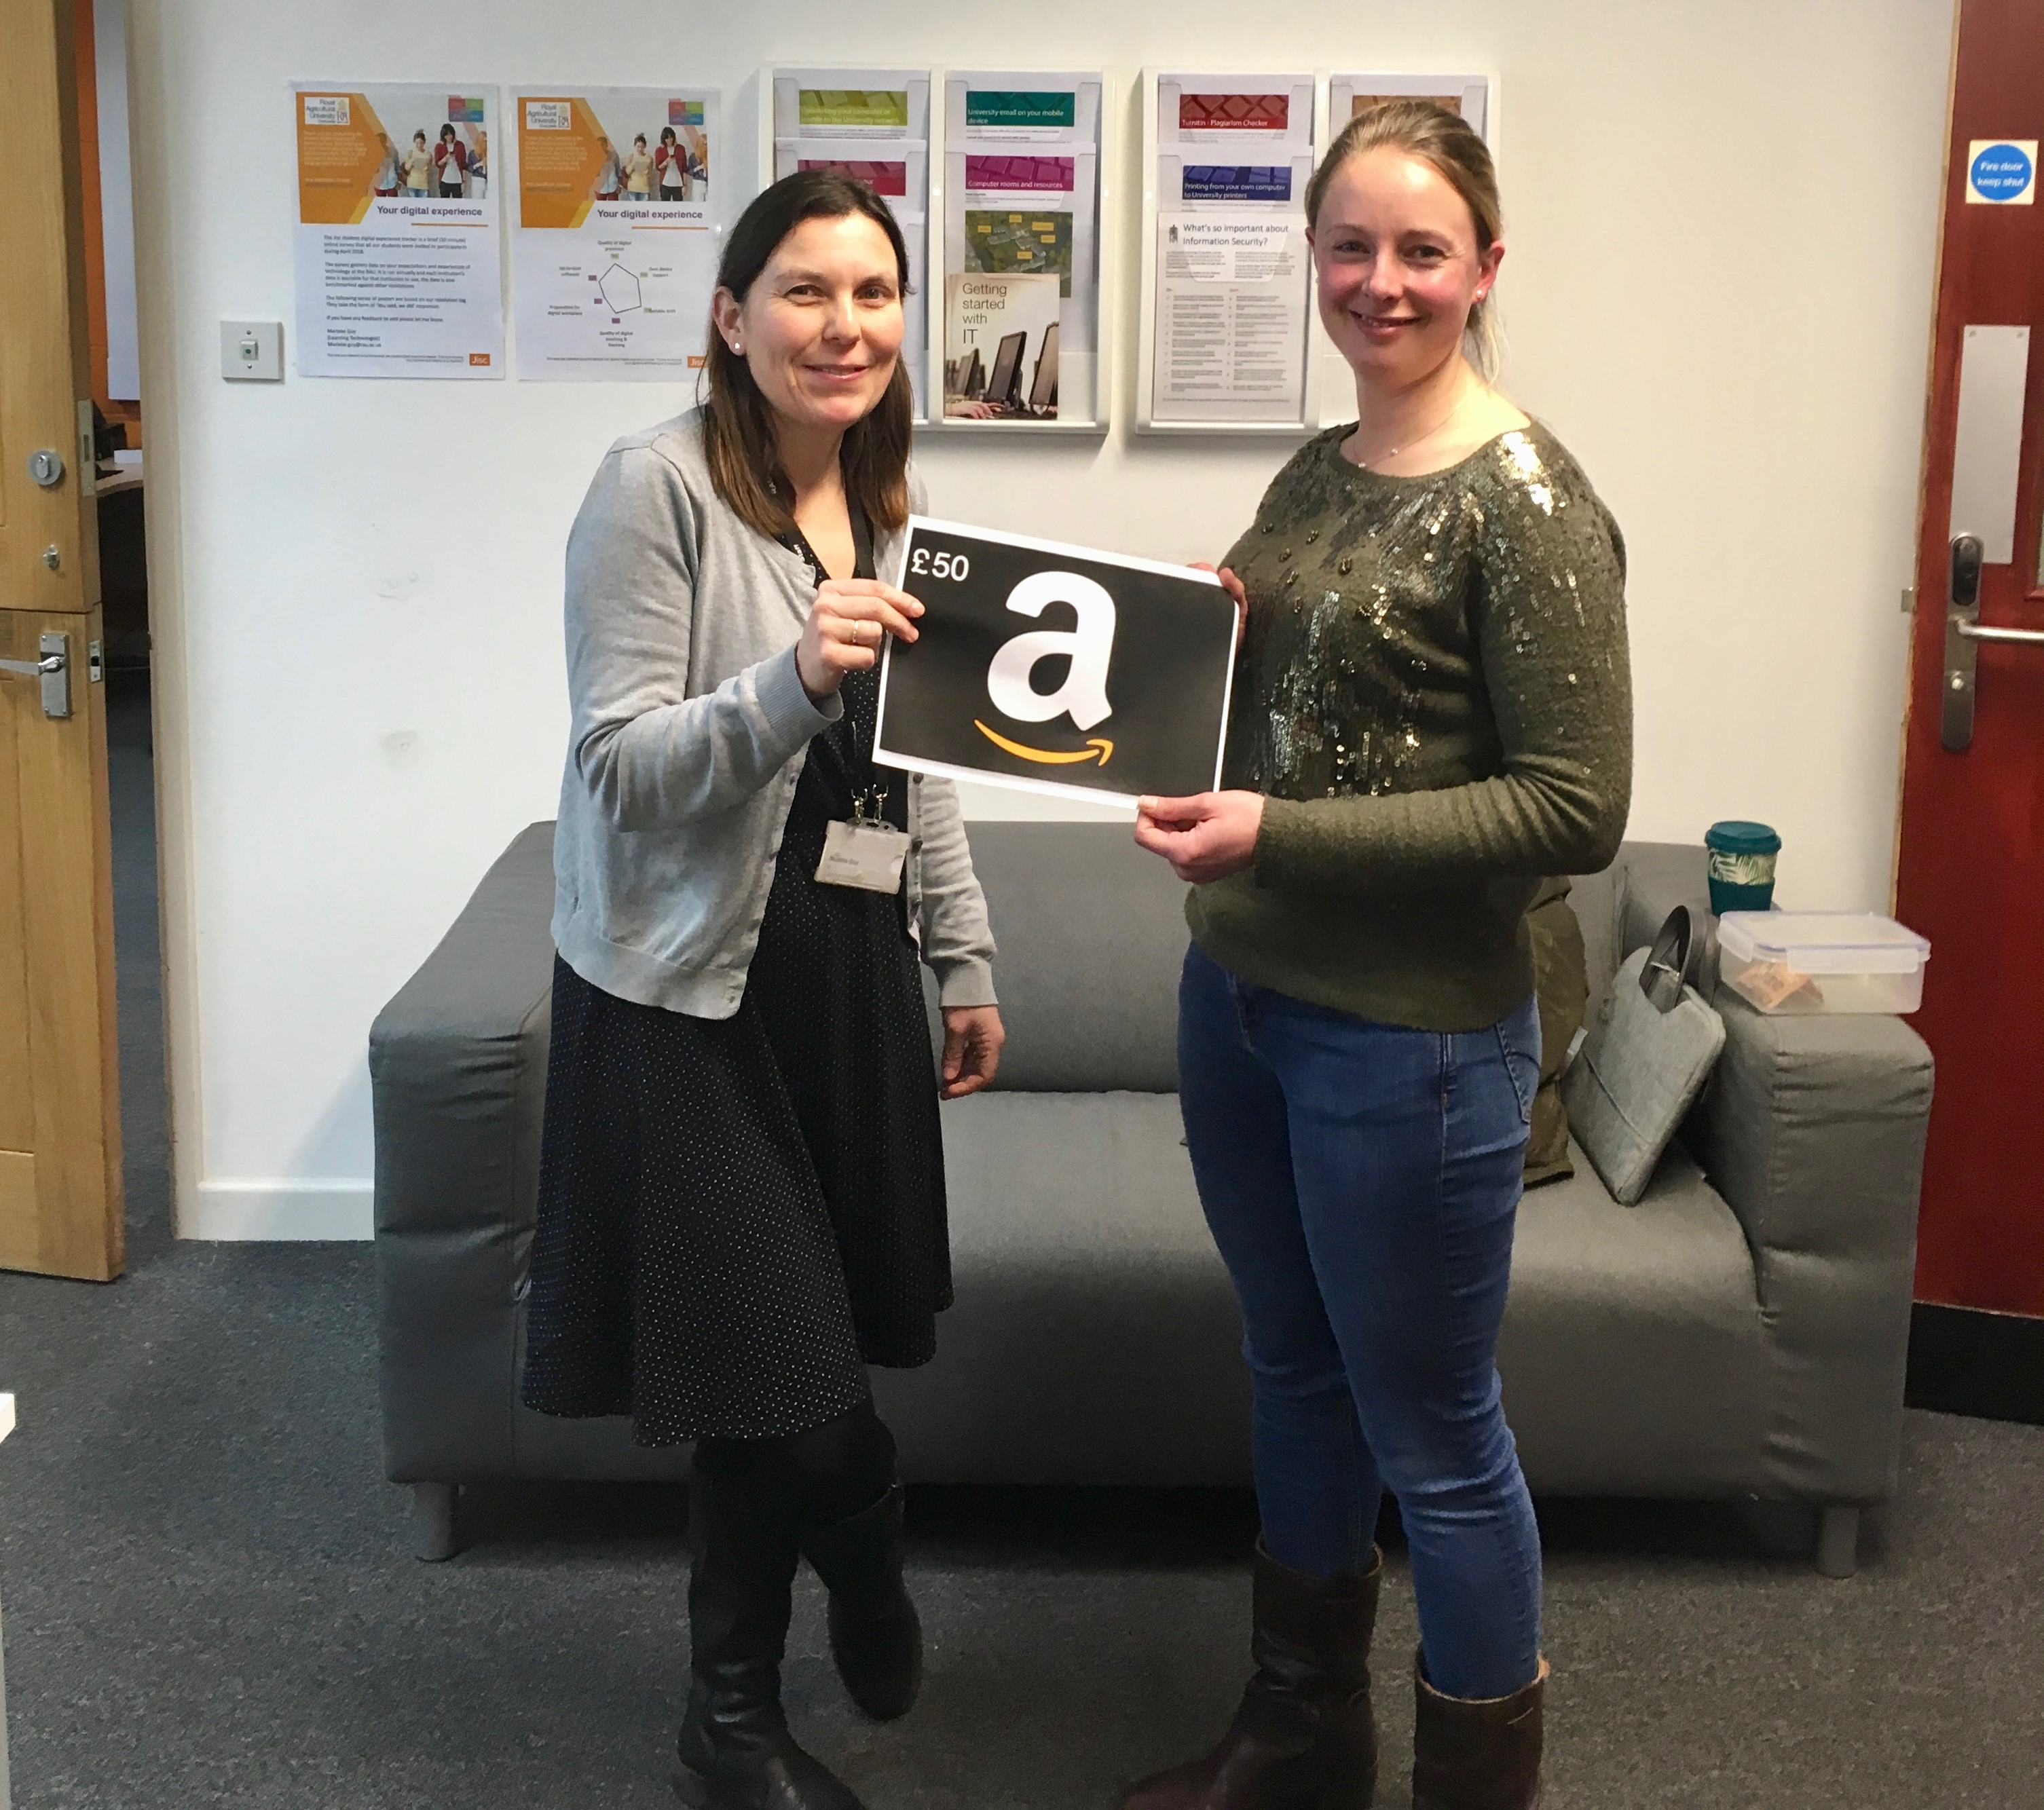 Louisa Gostling, studying on the MSc Business Management course was the lucky £50 Amazon voucher winner selected from RAU students who completed the survey